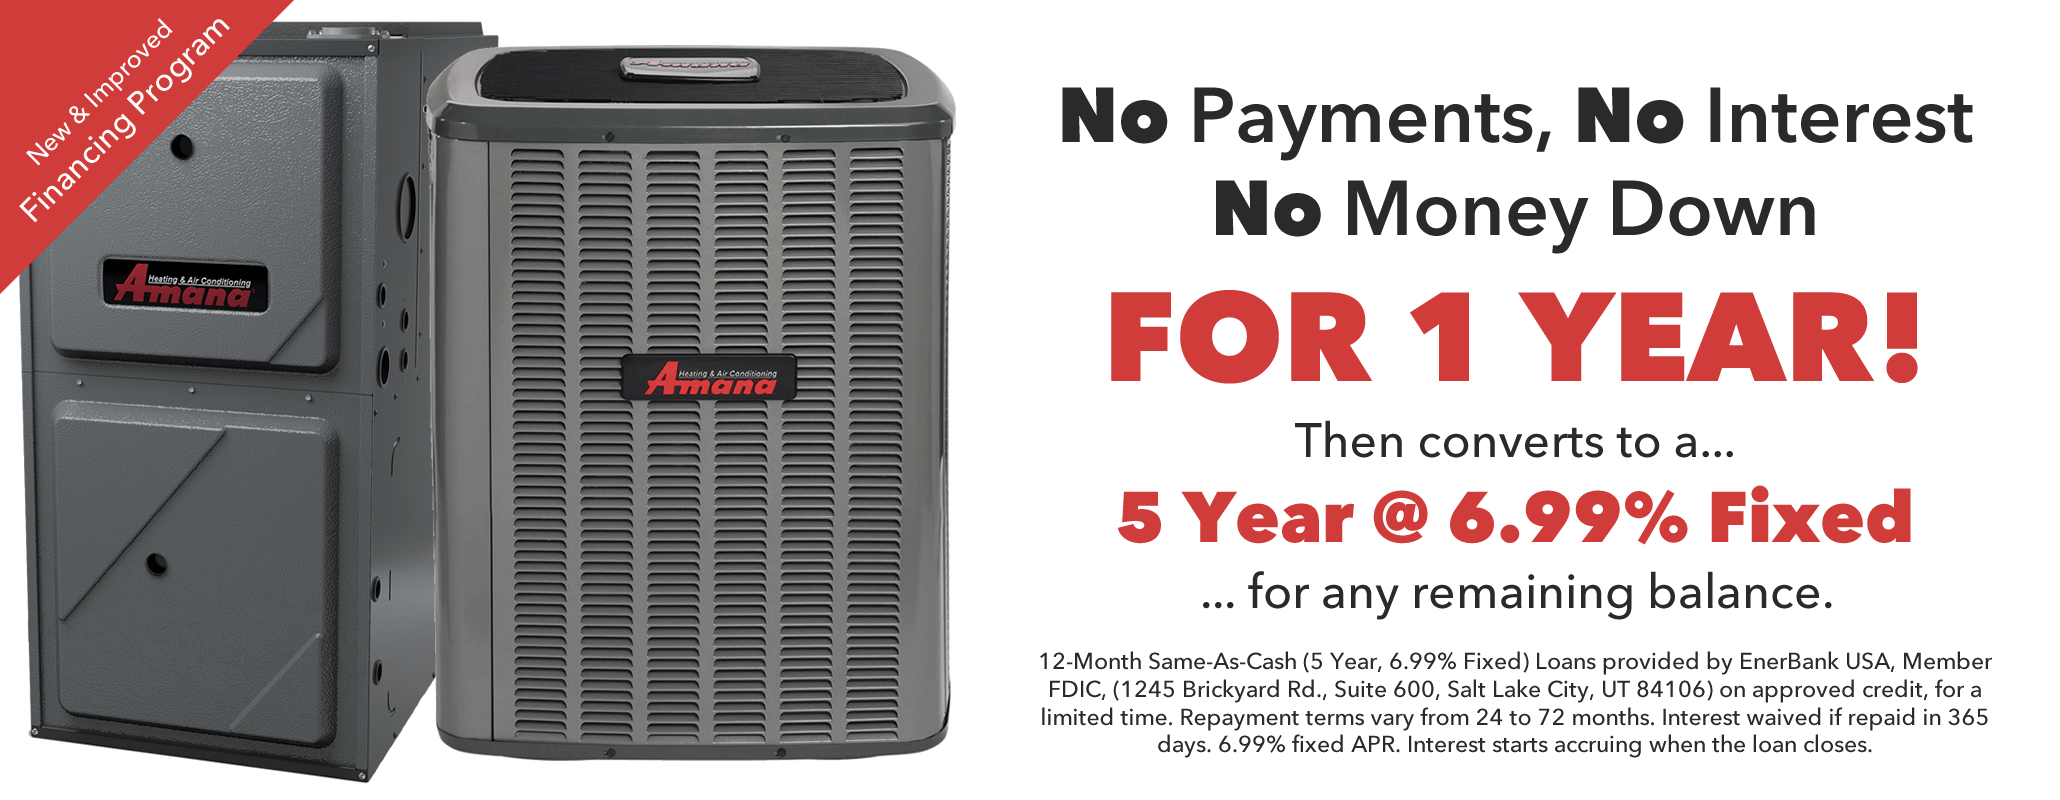 No Payments, No Interest, No Money Down for 1 Year. To approved credit, for a limited time. Interest is waived if repaid in 365 days. As of October 1st 2019, the fixed APR is 18.58%